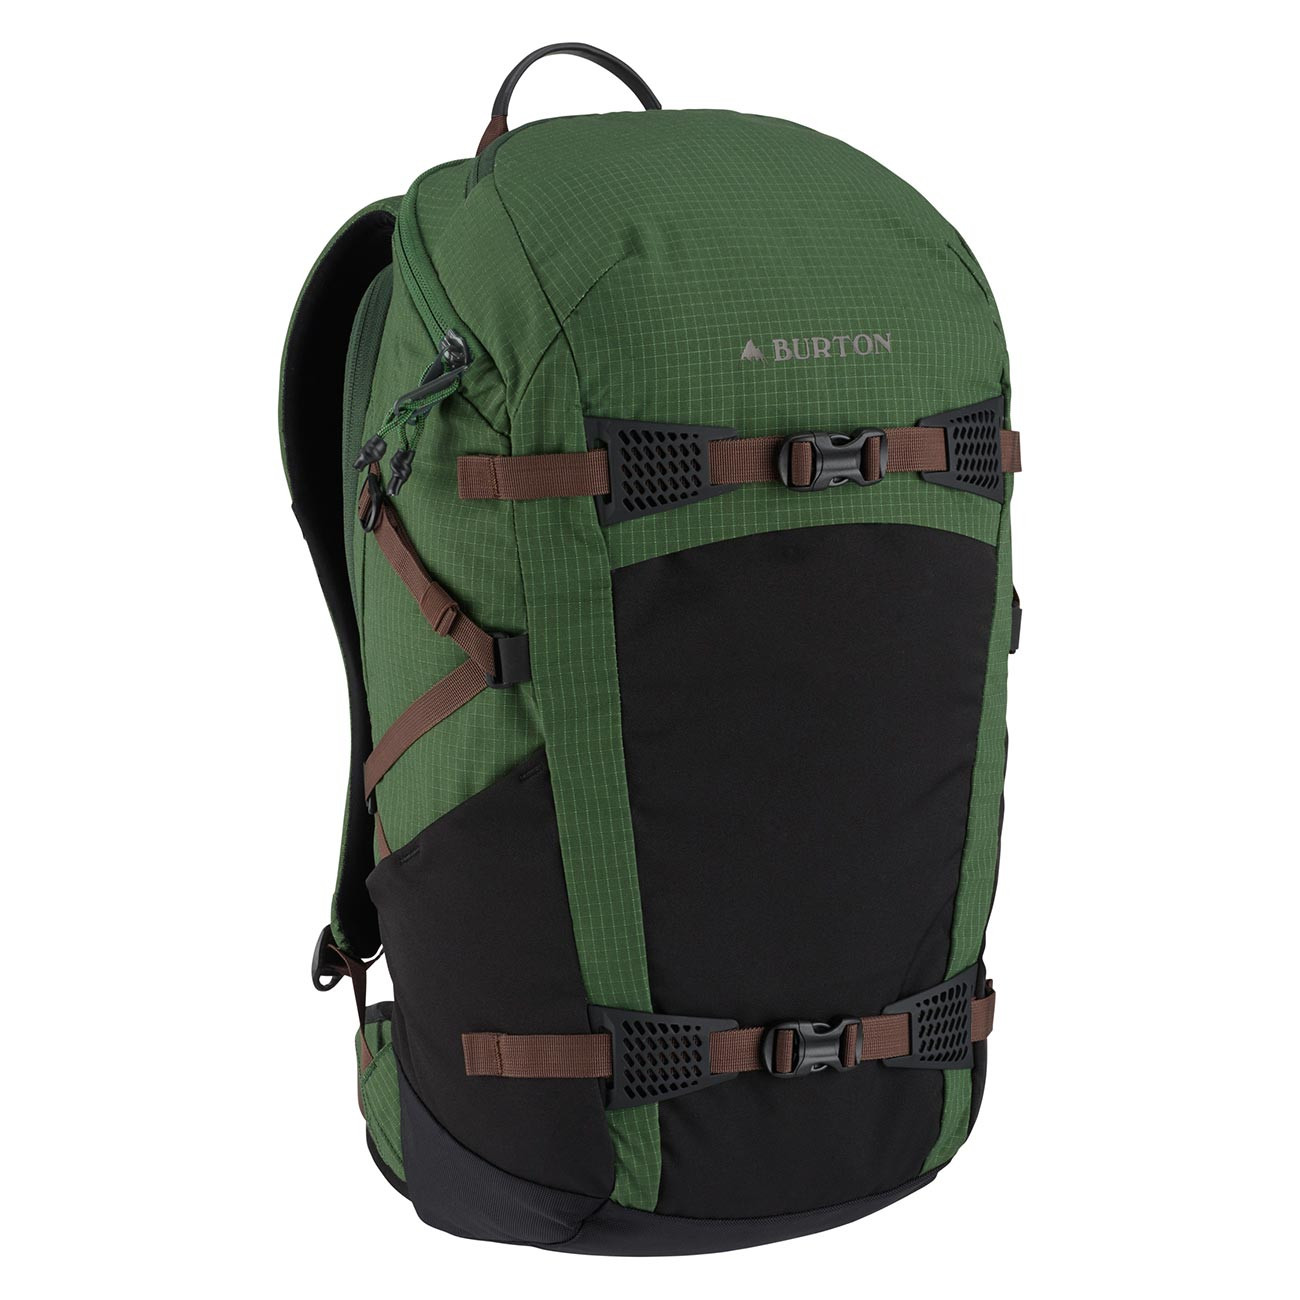 Batoh Burton Day Hiker 31L rifle green ripstop